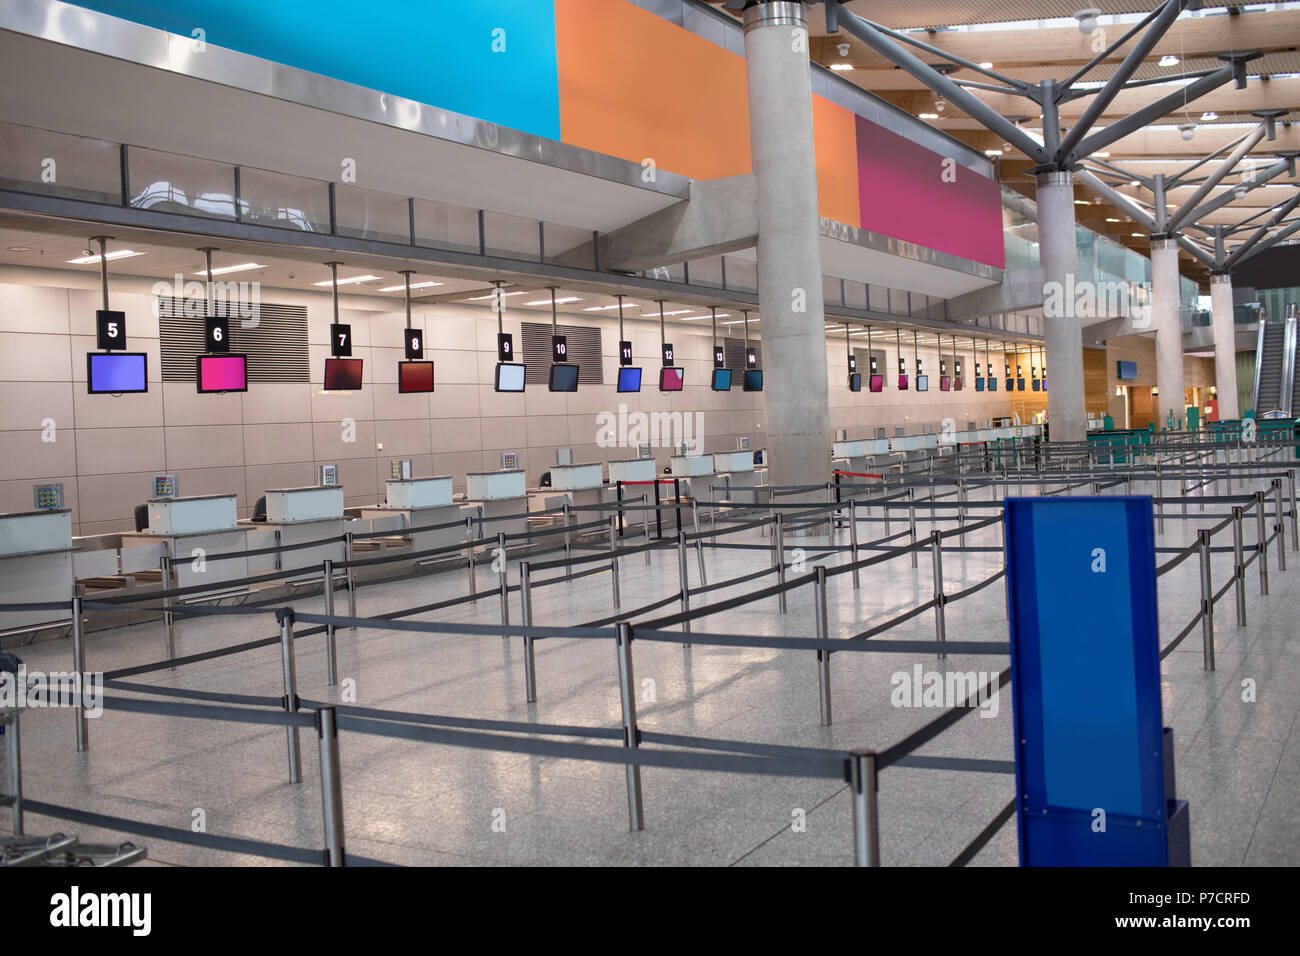 Check-in counters and stanchions - Stock Image